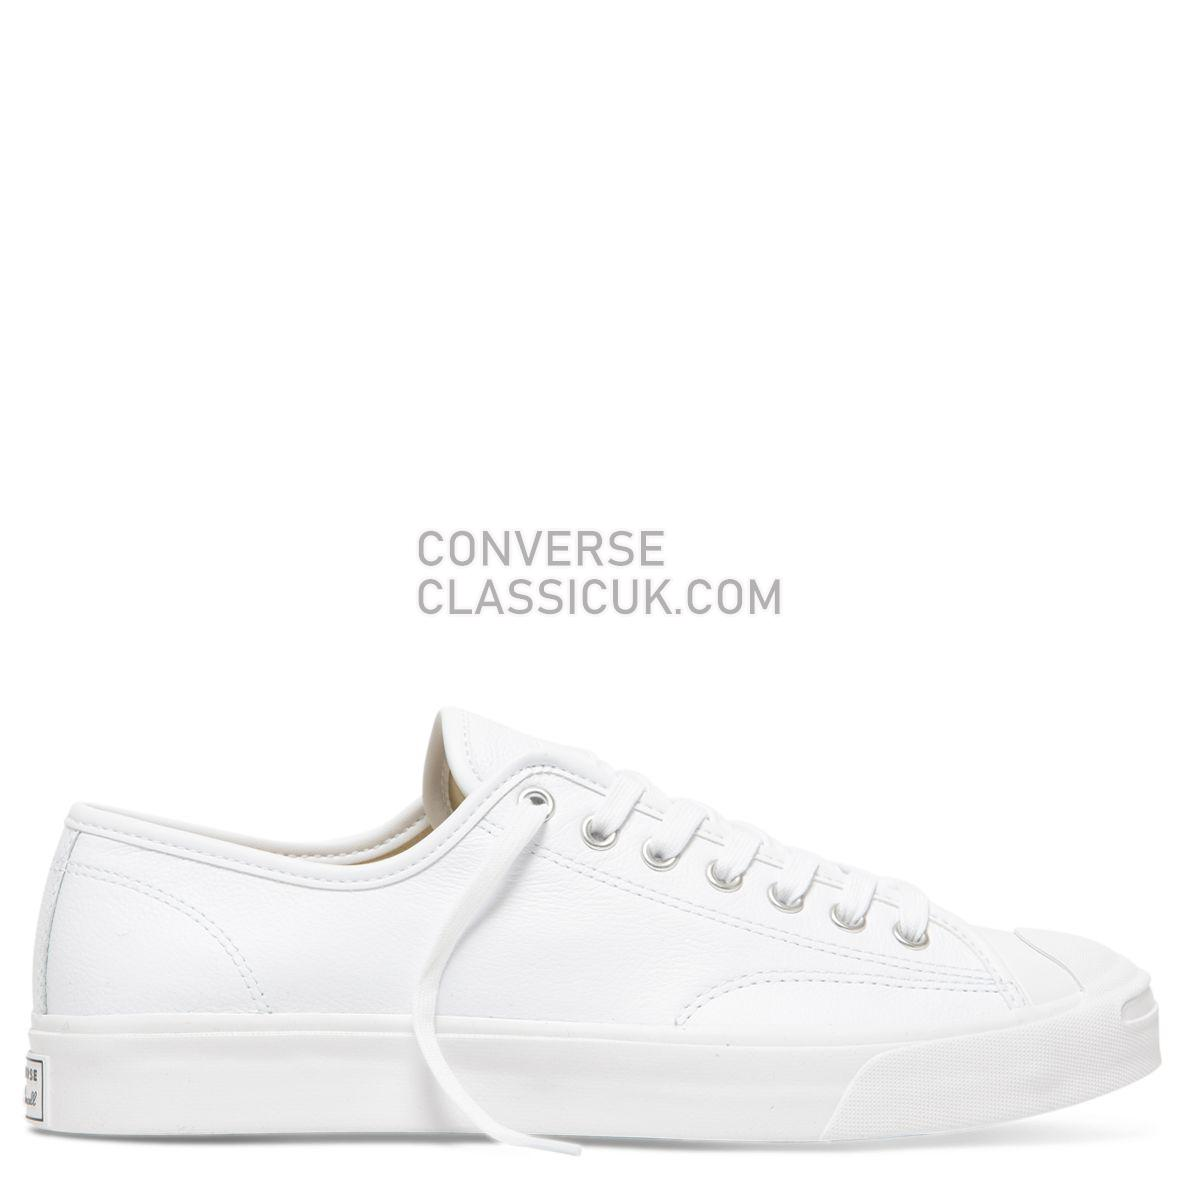 Converse Jack Purcell Foundational Leather Low Top White Mono Mens 164225 White/White/White Shoes